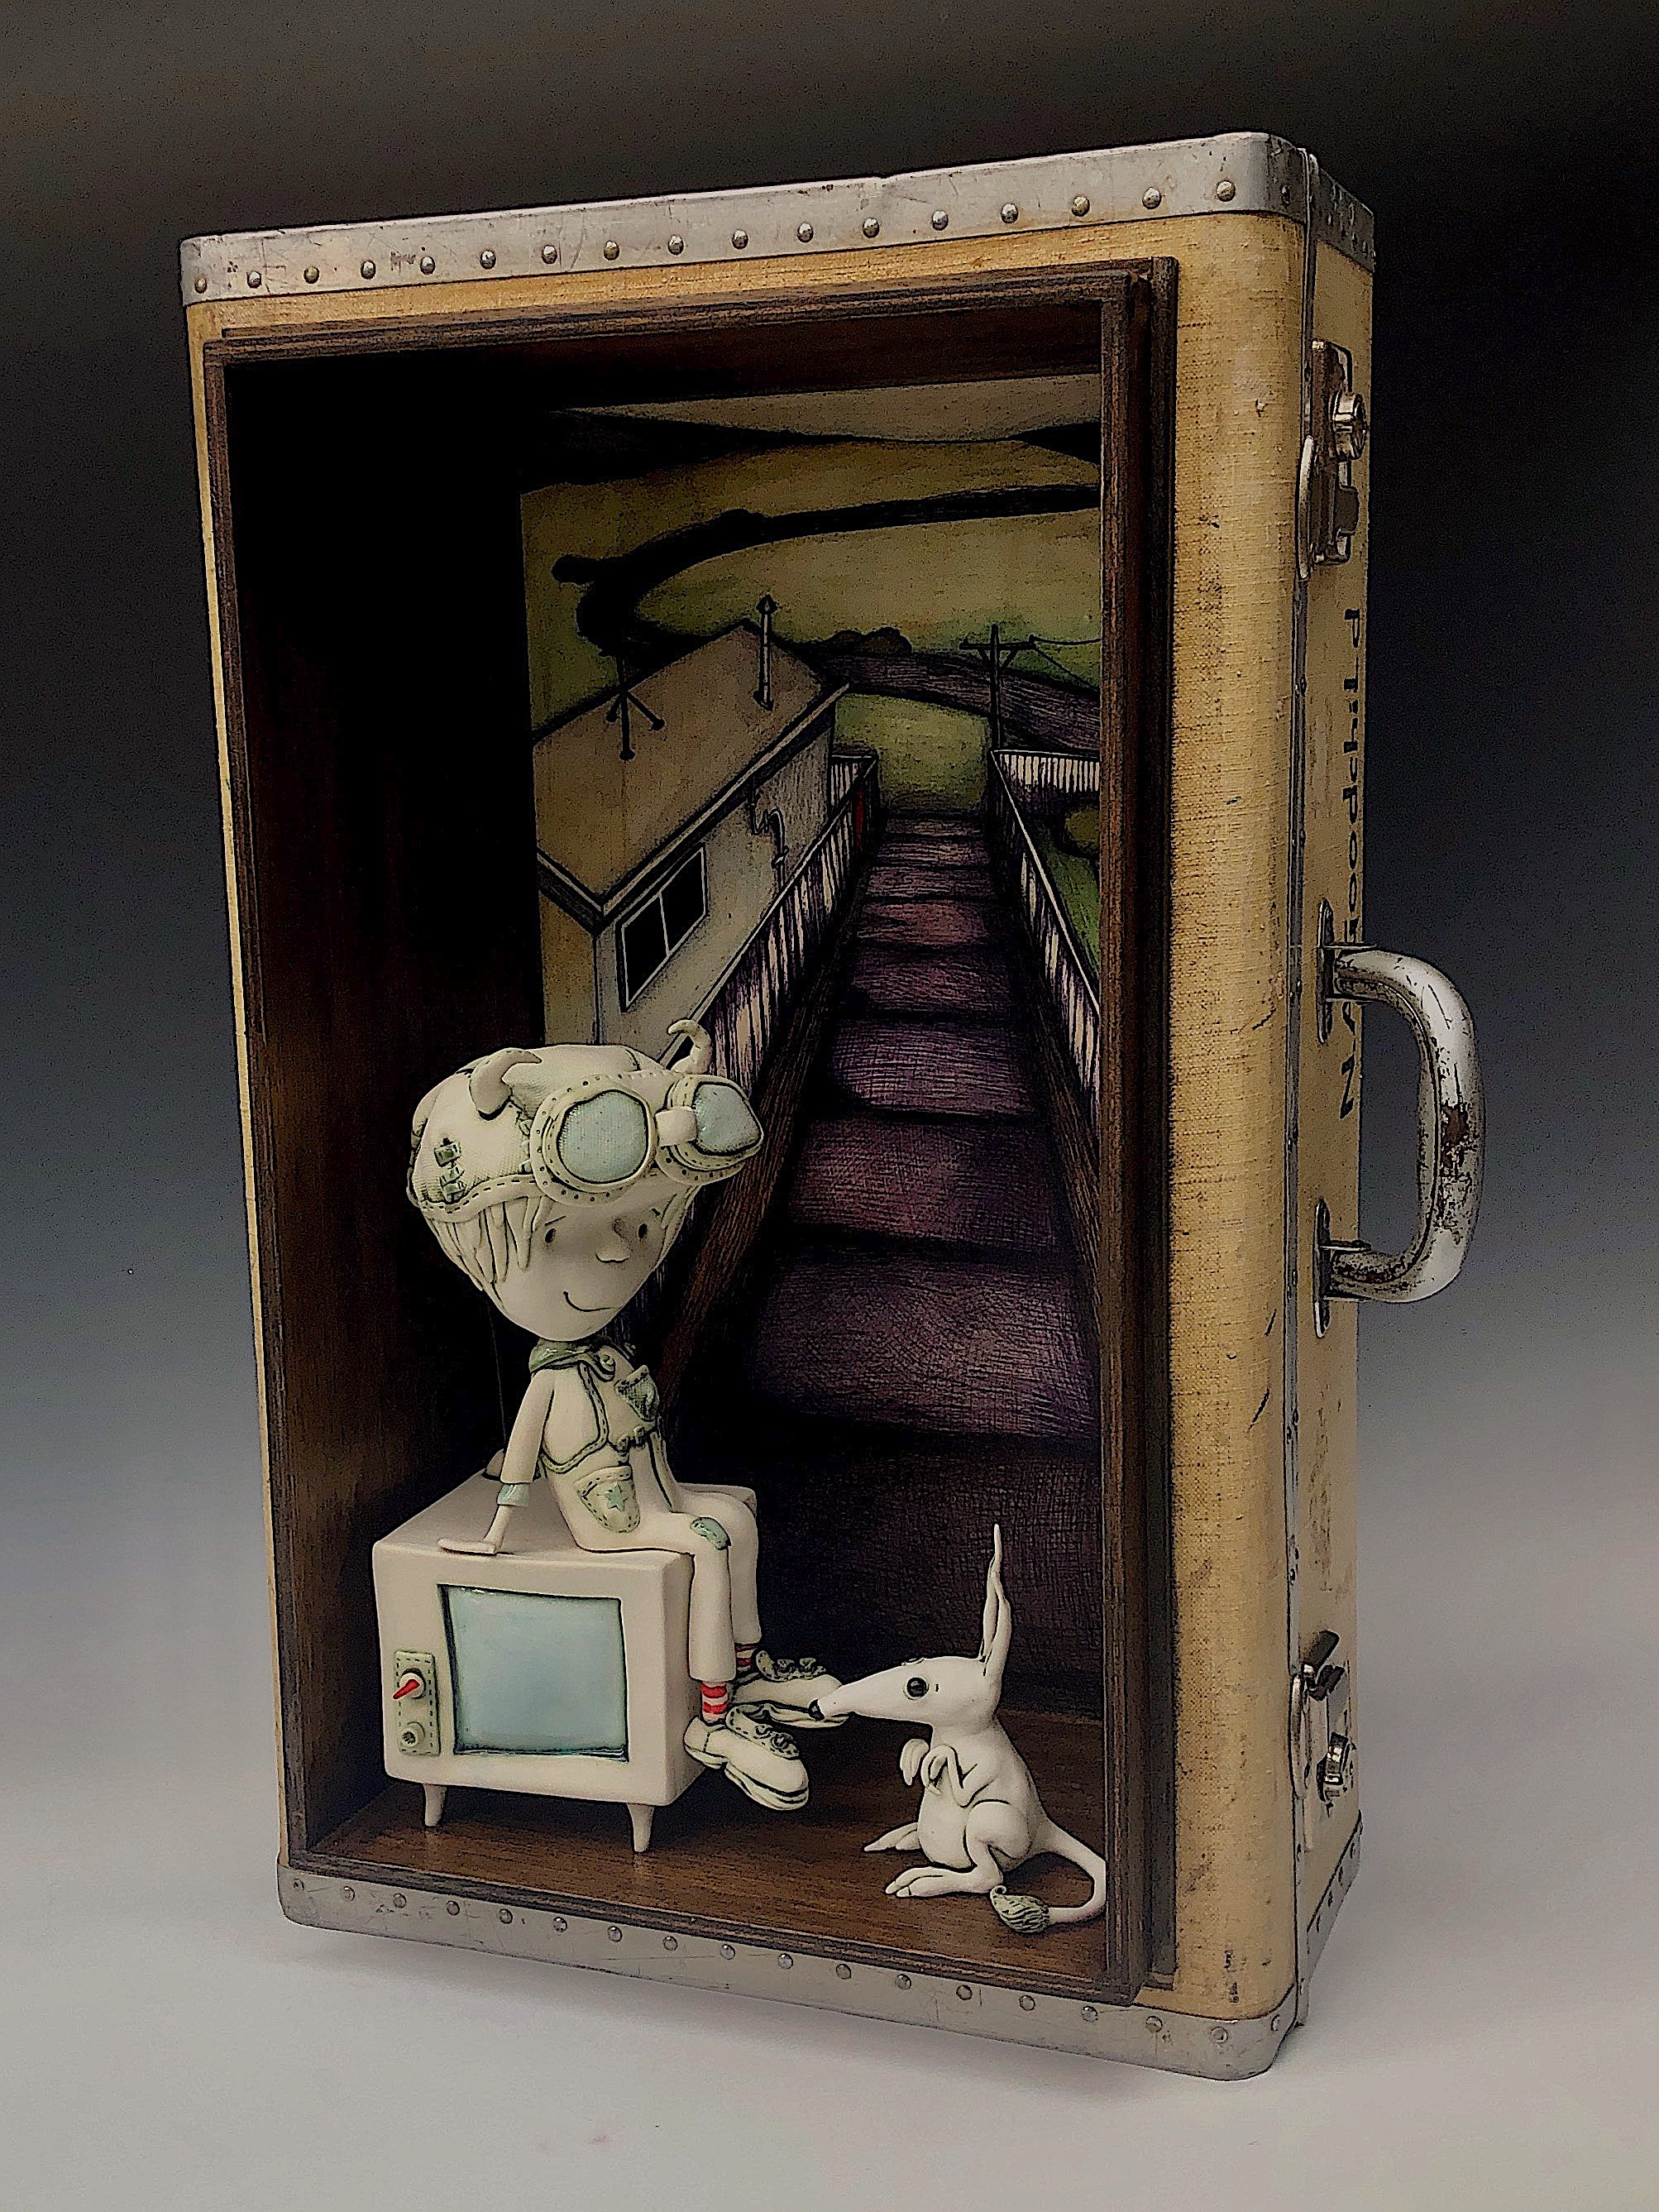 'The road no one seems to take any more'' porcelain, illustration and vintage suitcase. w34cm x  67cm x 27cm